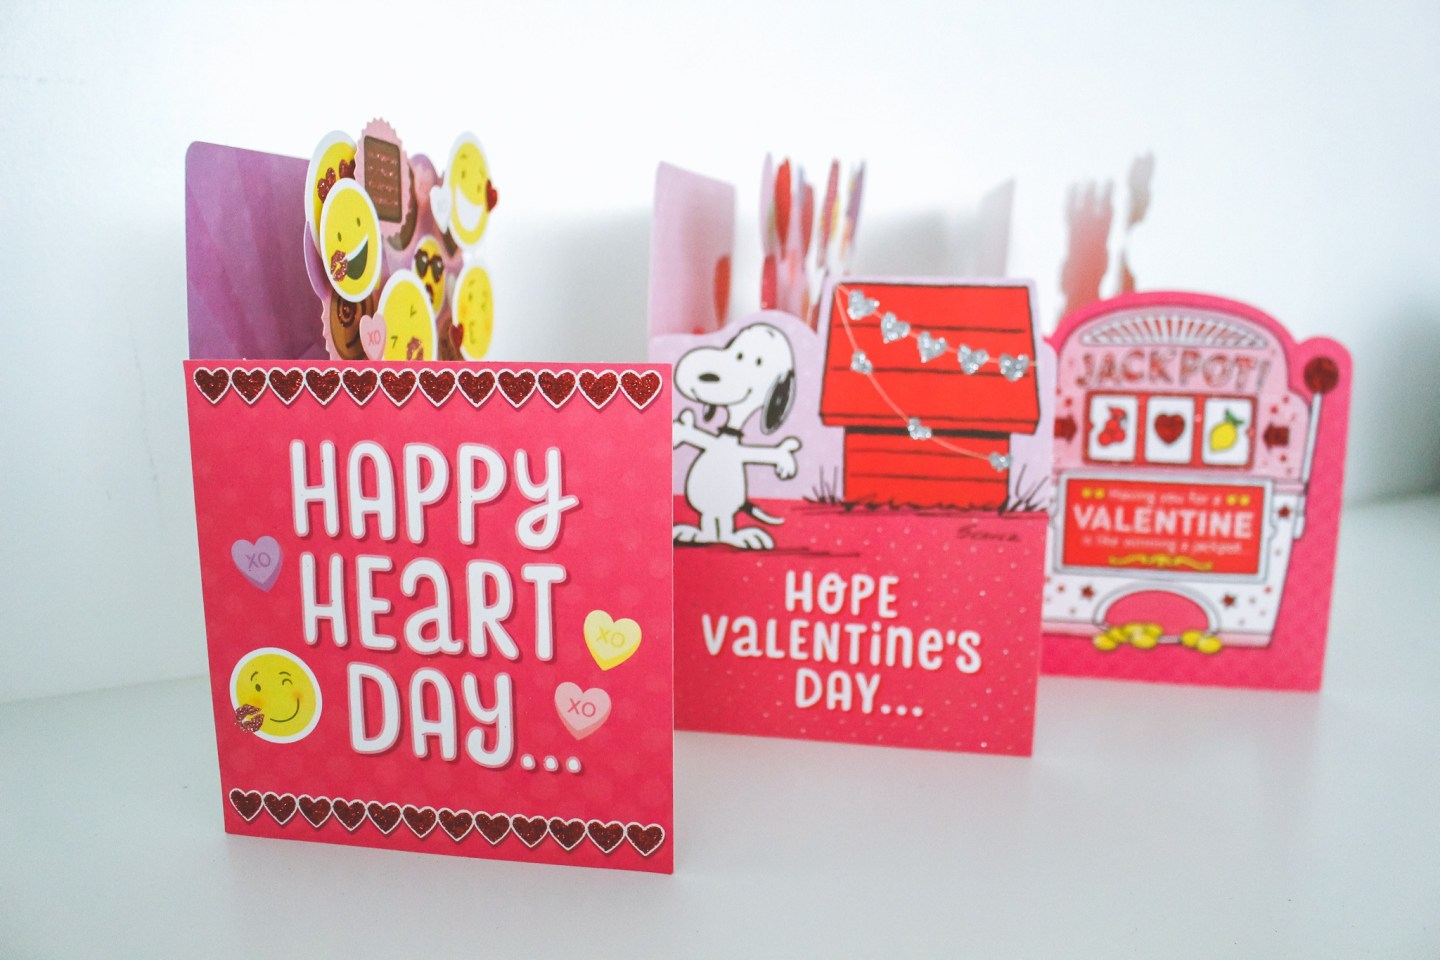 Last minute Valentines Day Gifts from Hallmark Canada